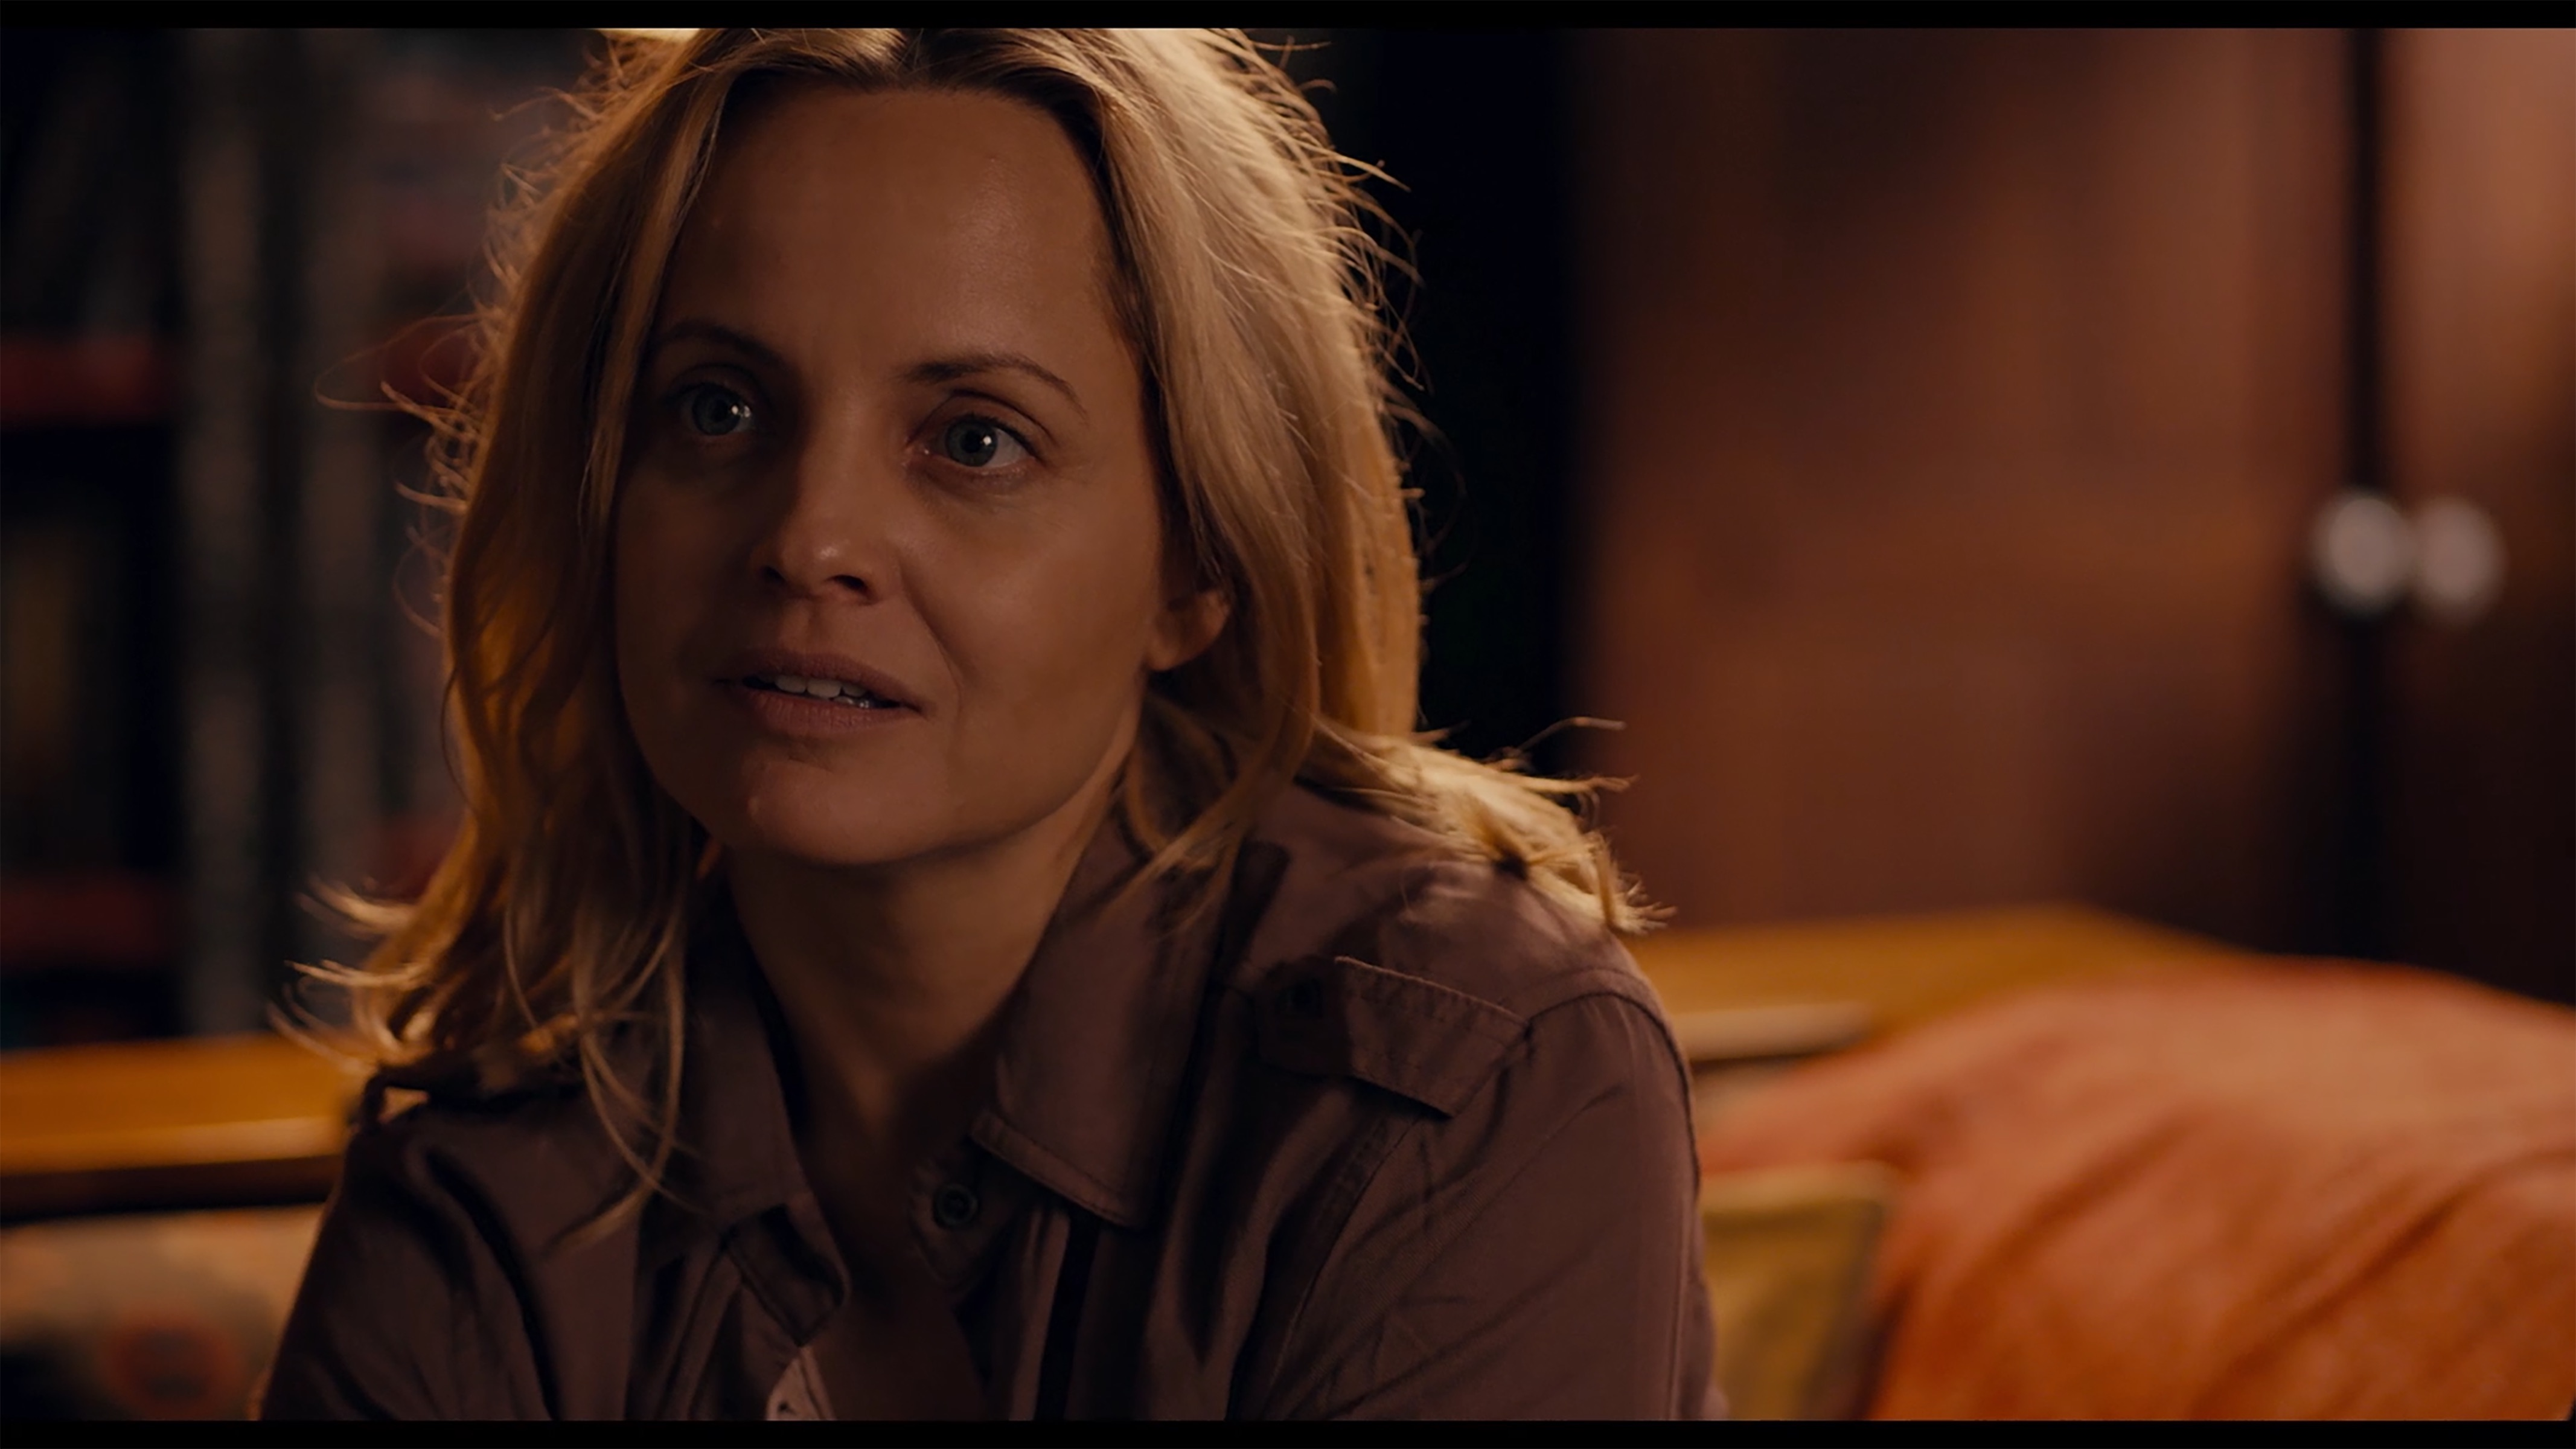 Mena Suvari as Michelle Wells in the thriller/sci - fi, WHAT LIES BELOW , a Vertical Entertainment release. Photo courtesy of Vertical Entertainment.